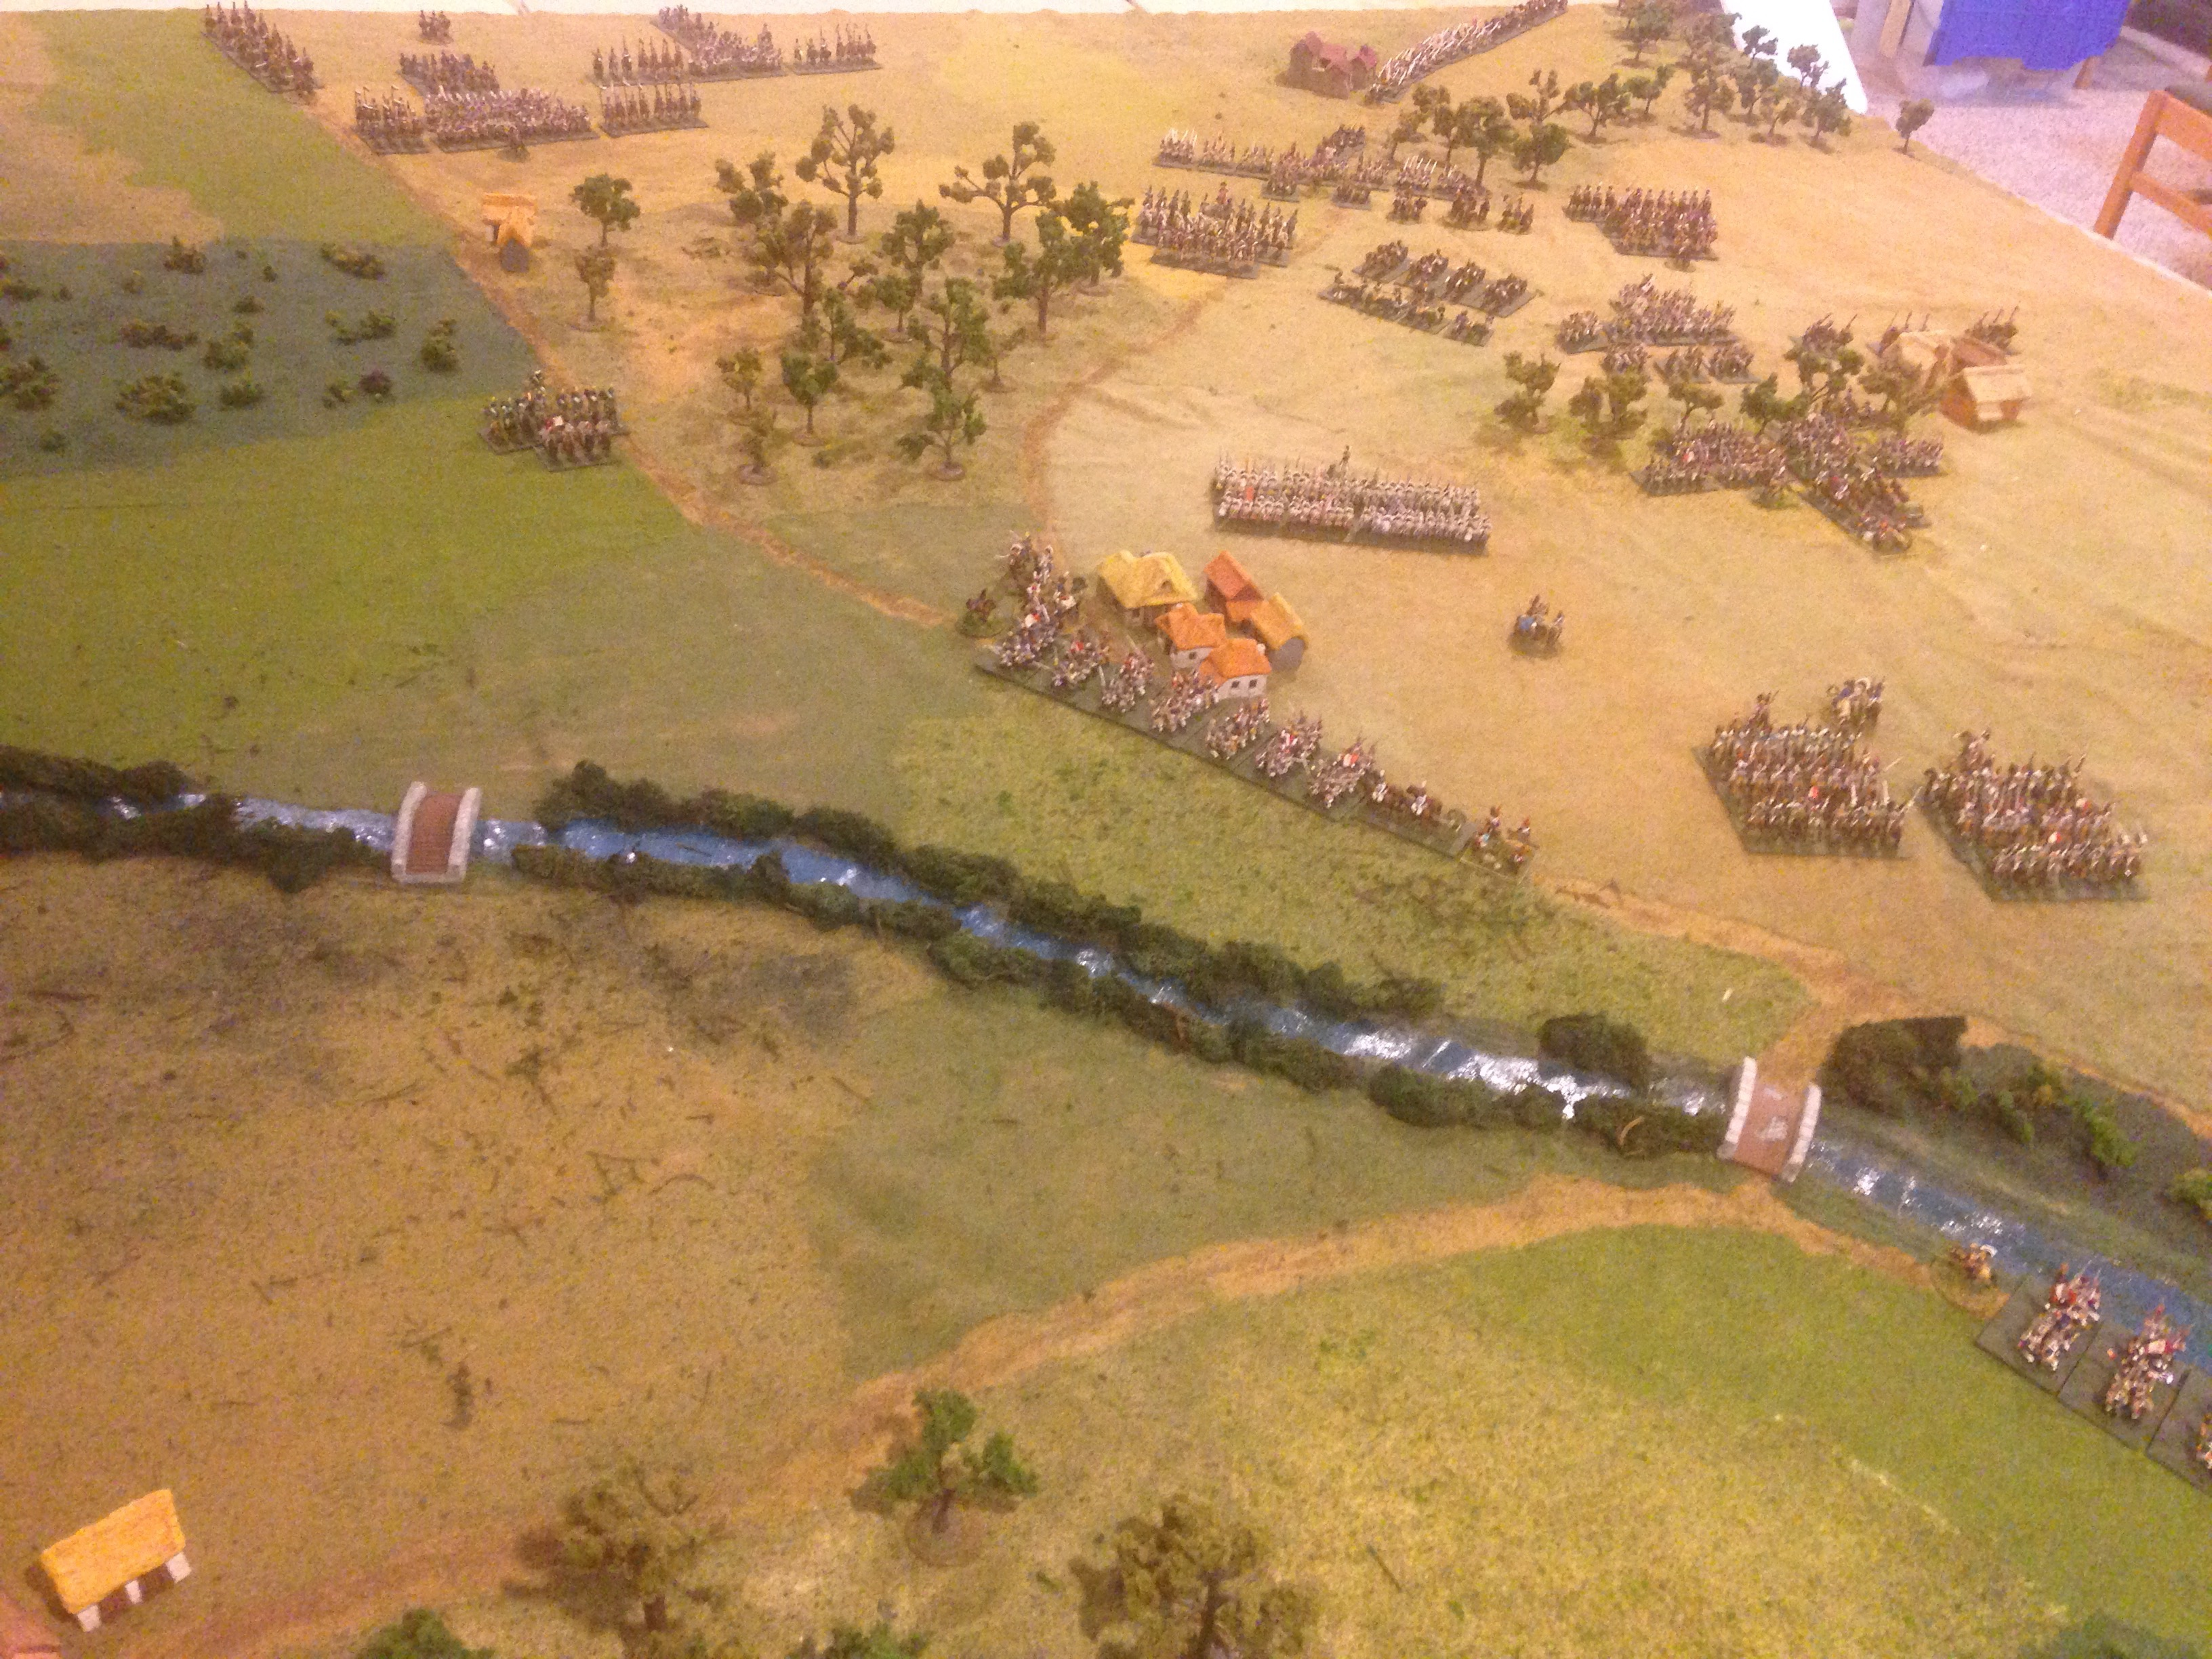 Rear of the French line showing the proximity of the crossing points to the battle line.